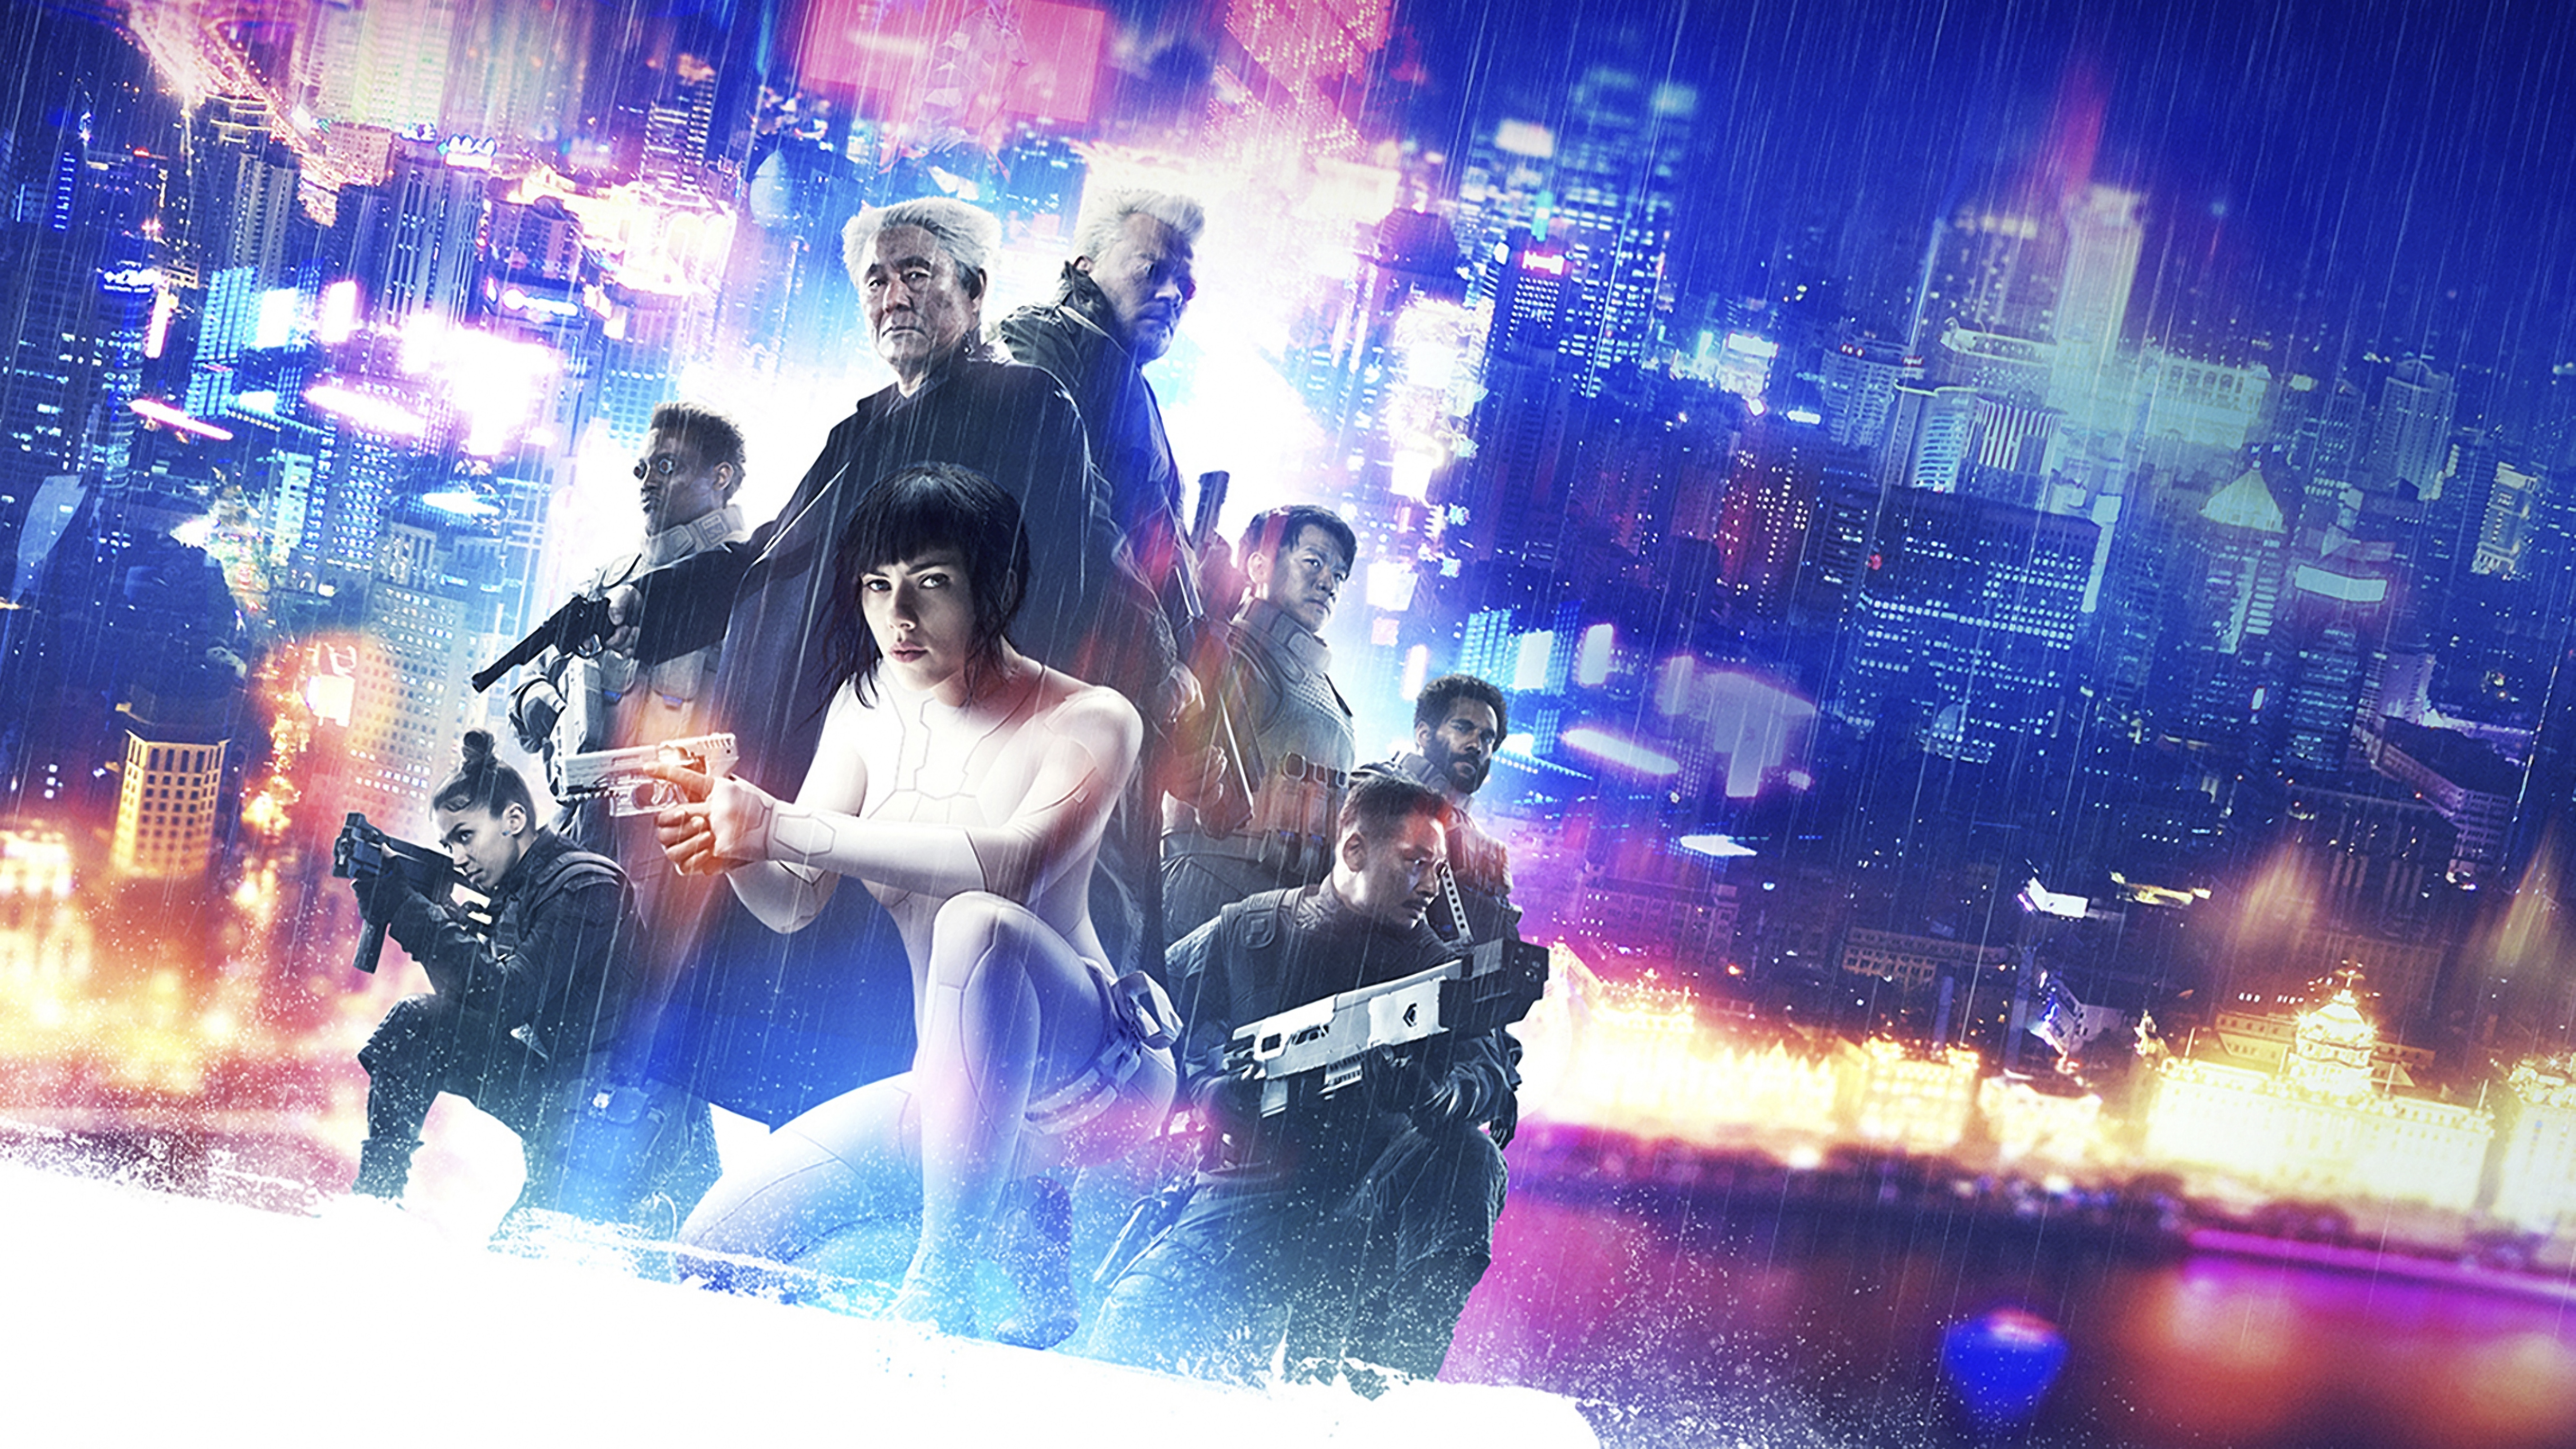 Ghost In The Shell Wallpaper Ghost In The Shell Mobile 1286936